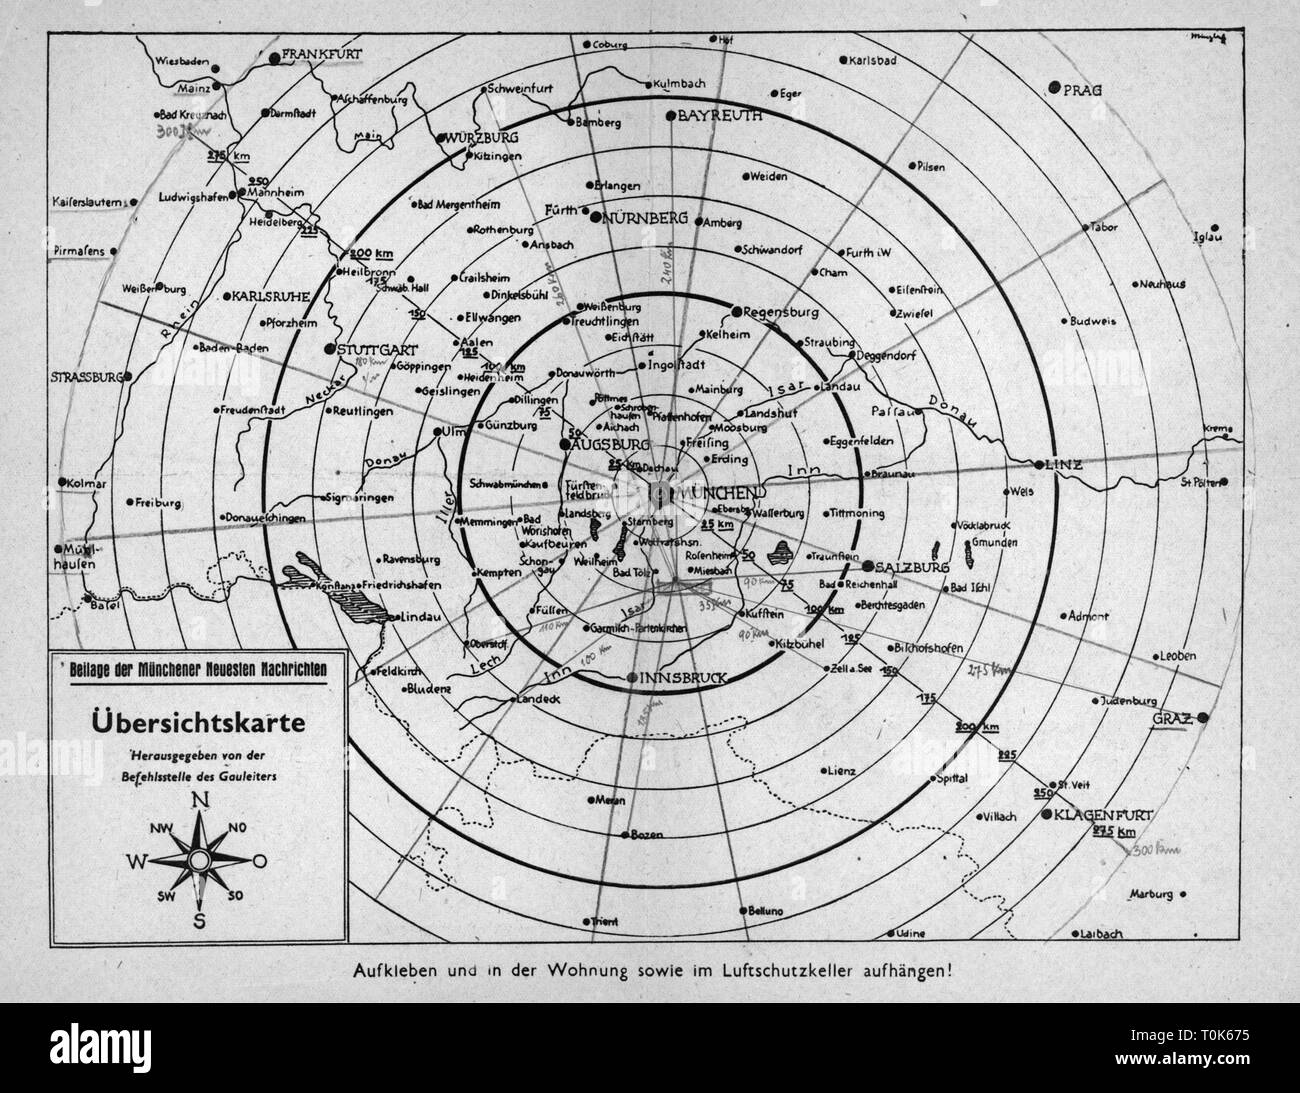 events, Second World War / WWII, aerial warfare, Germany, air raid protection, map indicating ranges from Munich, insert of the journal 'Muenchener Neueste Nachrichten', circa 1943, Additional-Rights-Clearance-Info-Not-Available - Stock Image